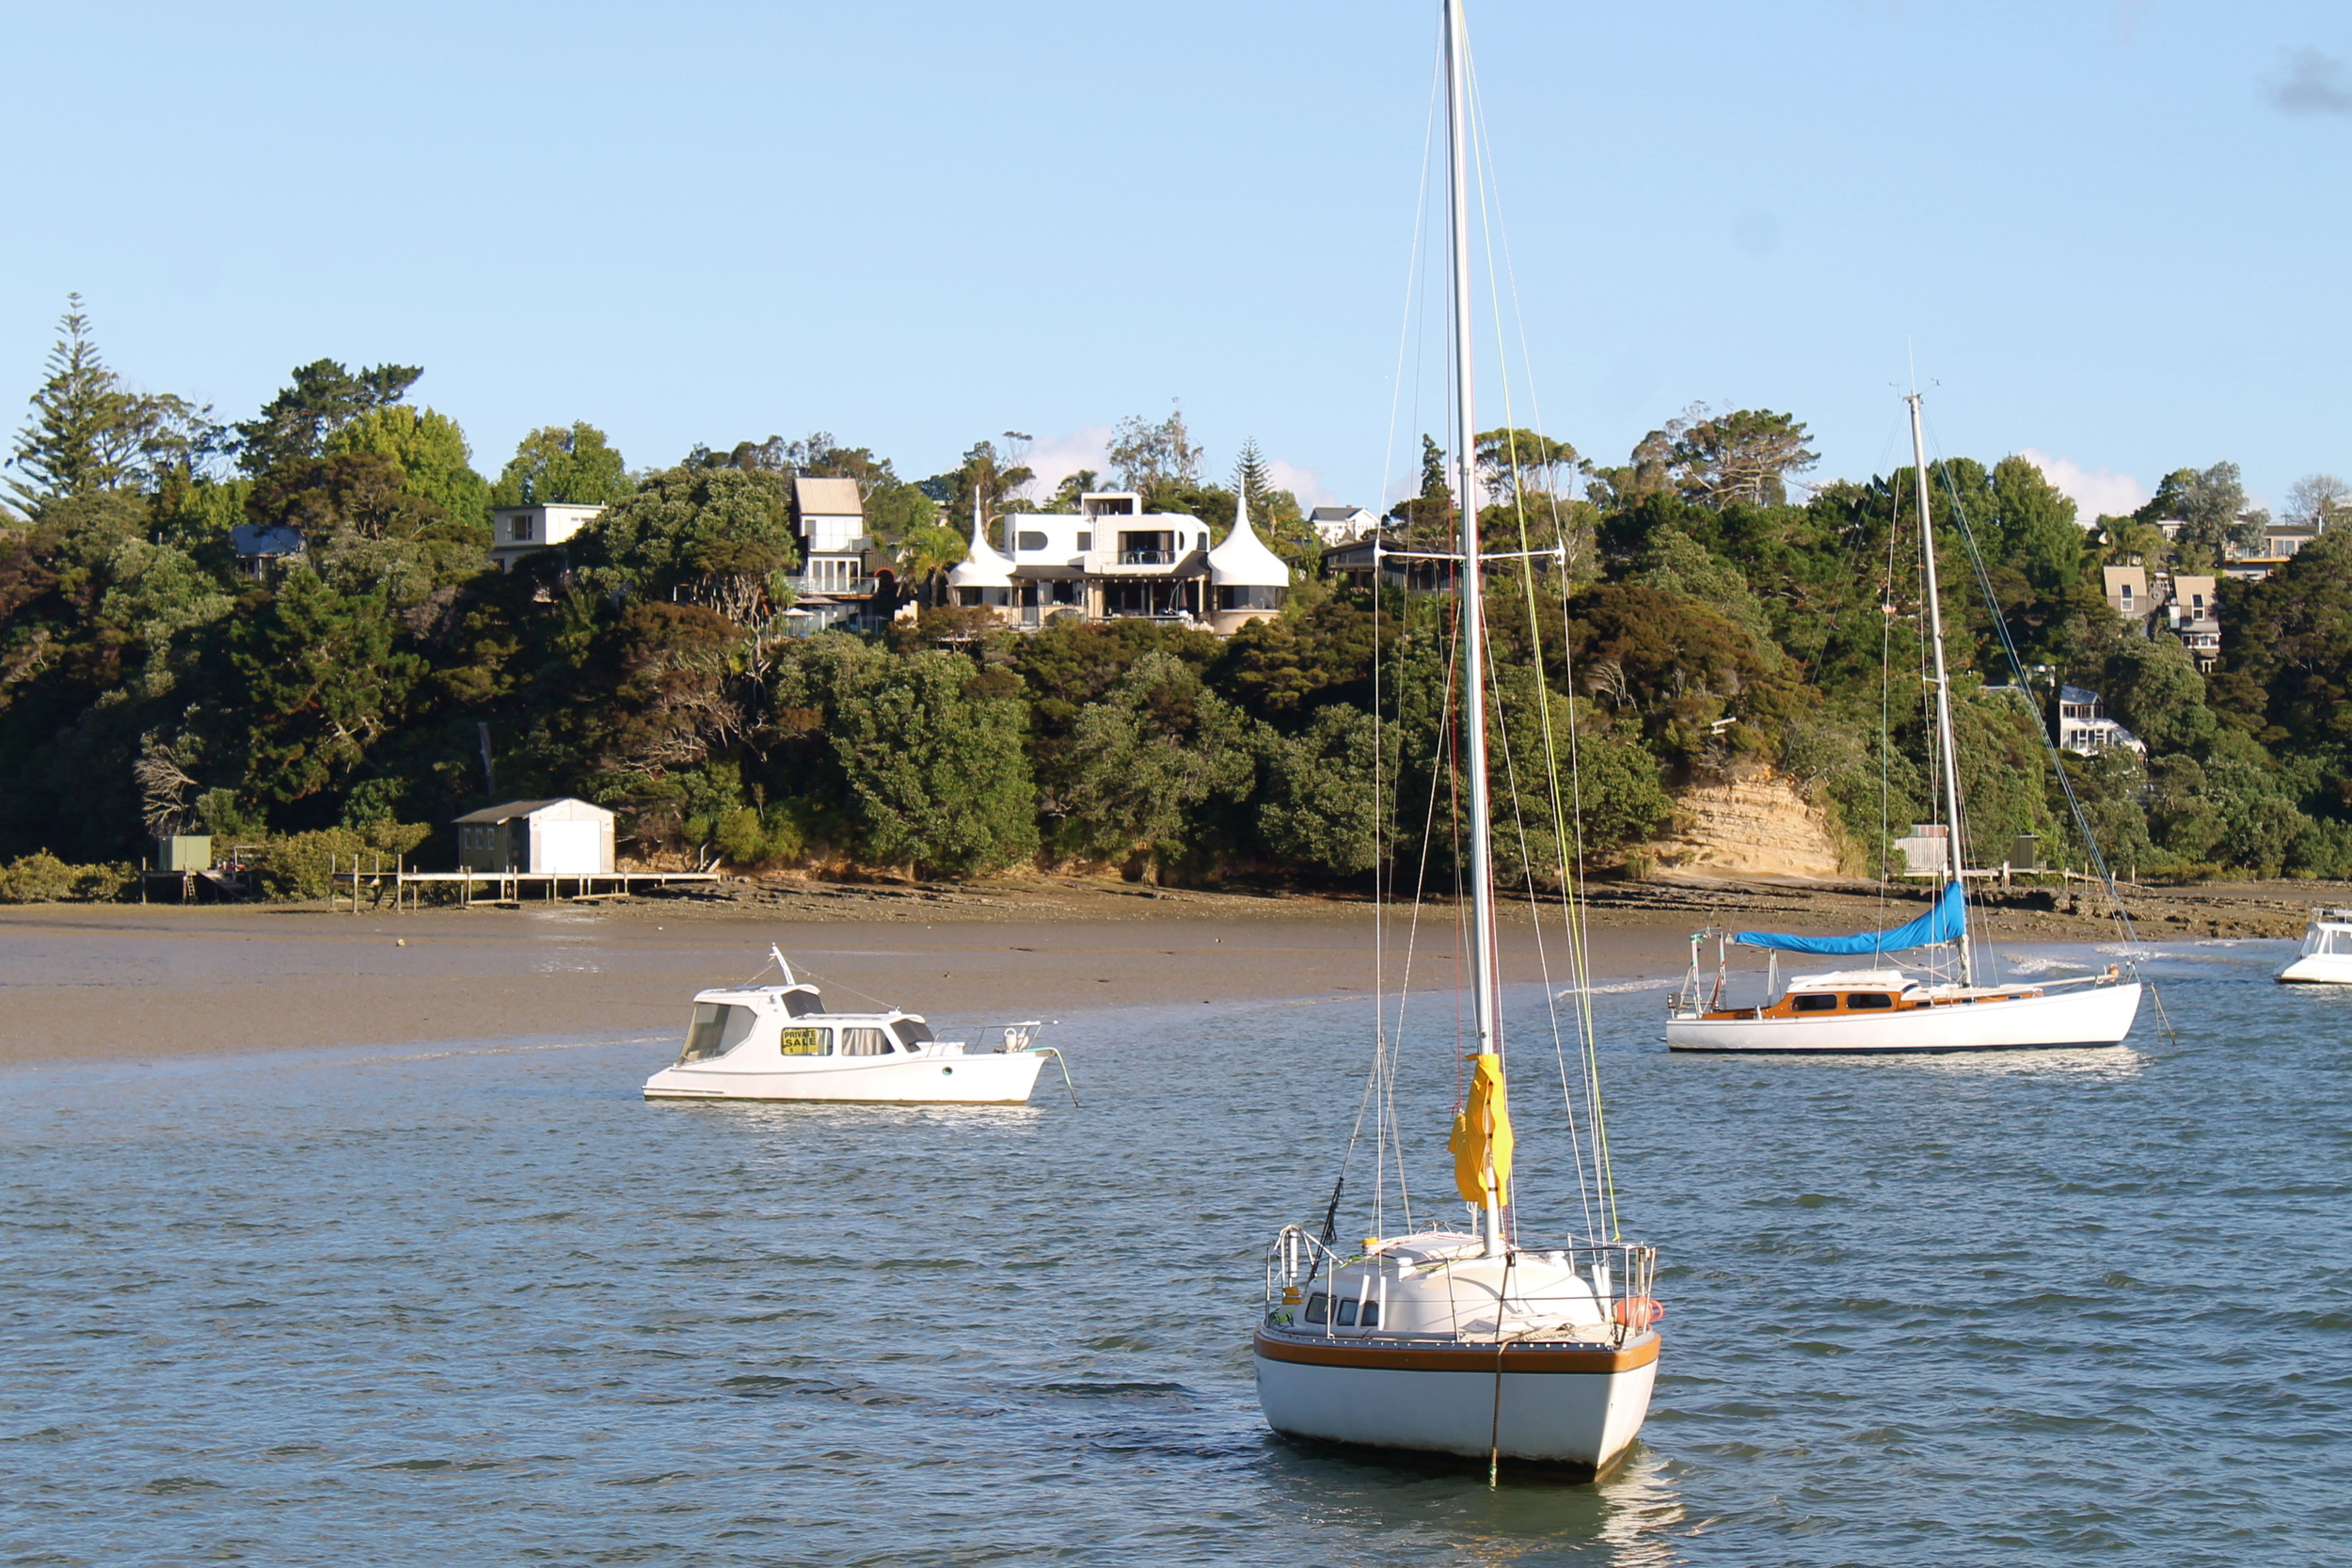 See that pointy house that could pass as a hobbit resort? That's my house. YUP. This was taken from the Beach Haven ferry.